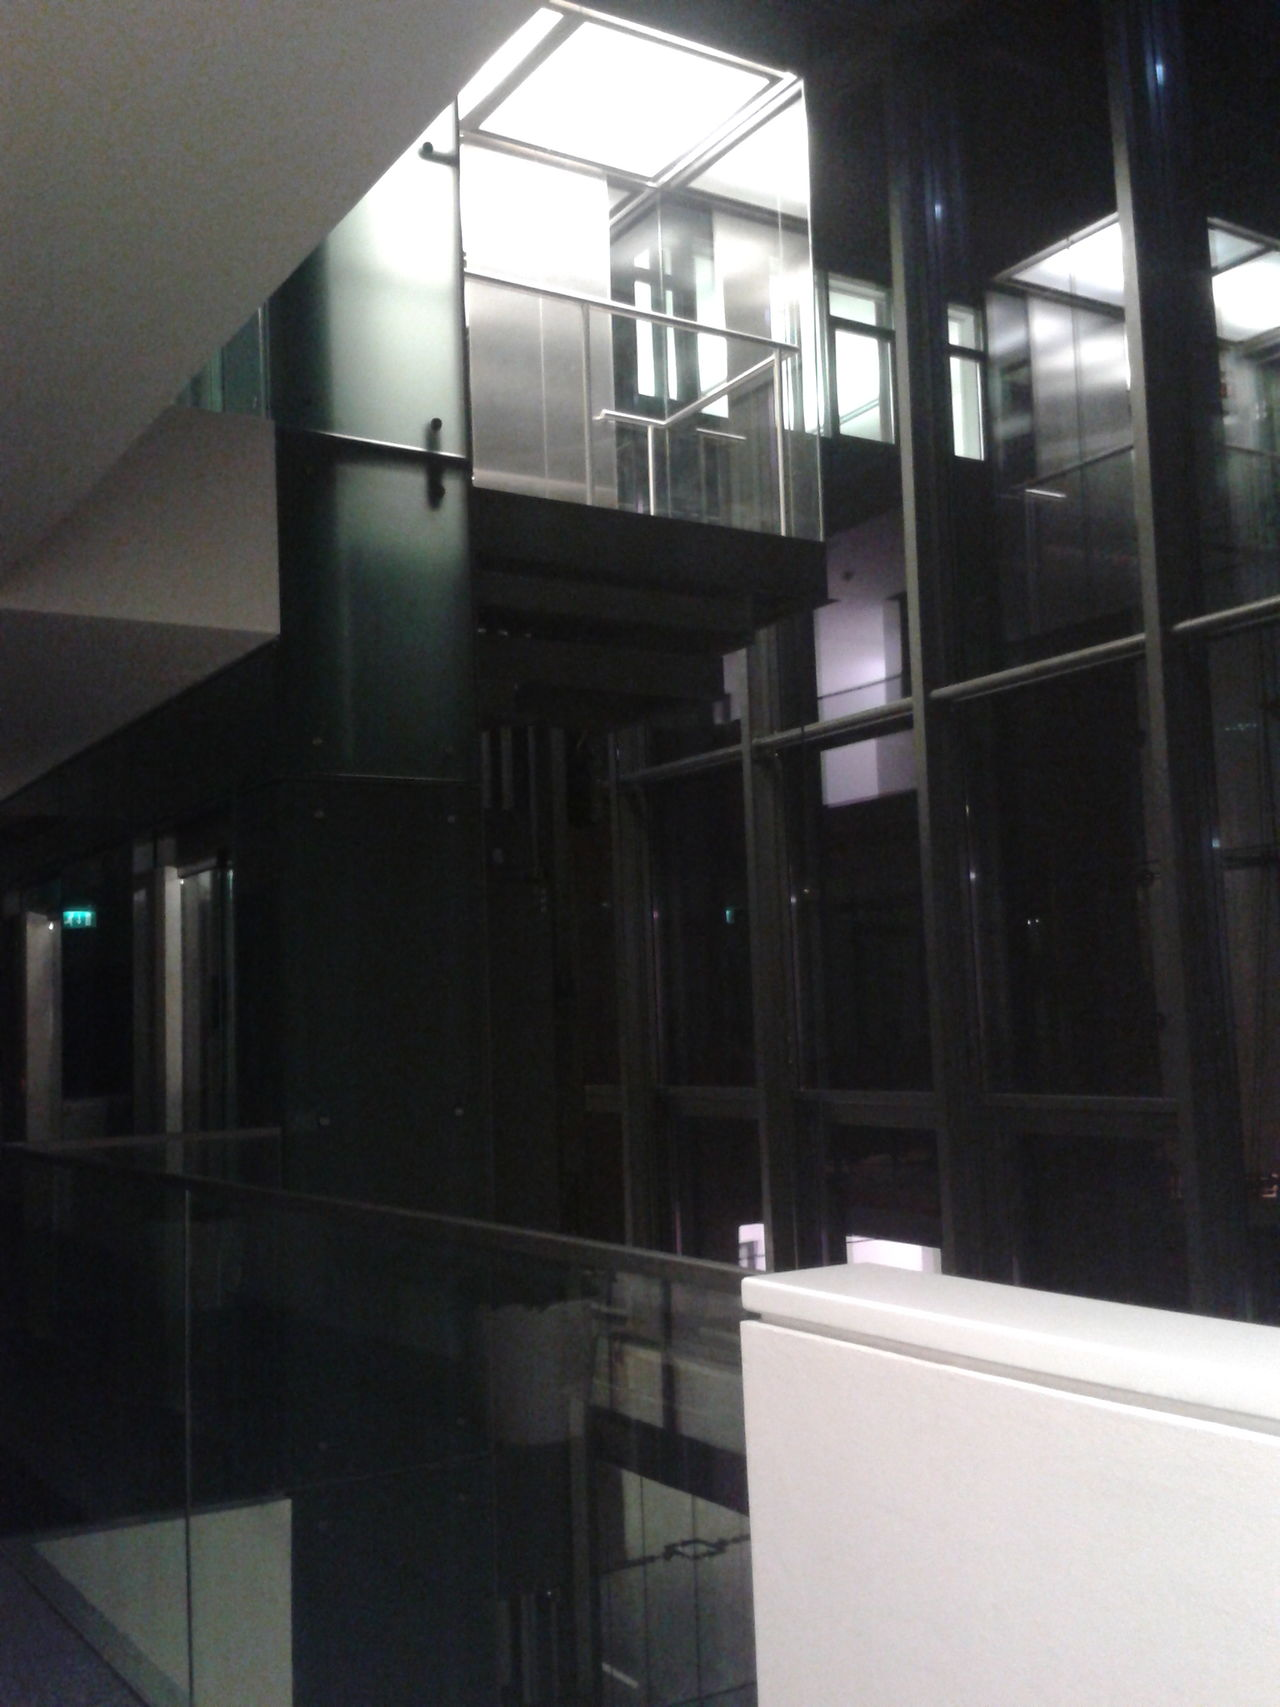 Absence Corridor Elevator Glass - Material Indoors  Modern Office Building Interior Window